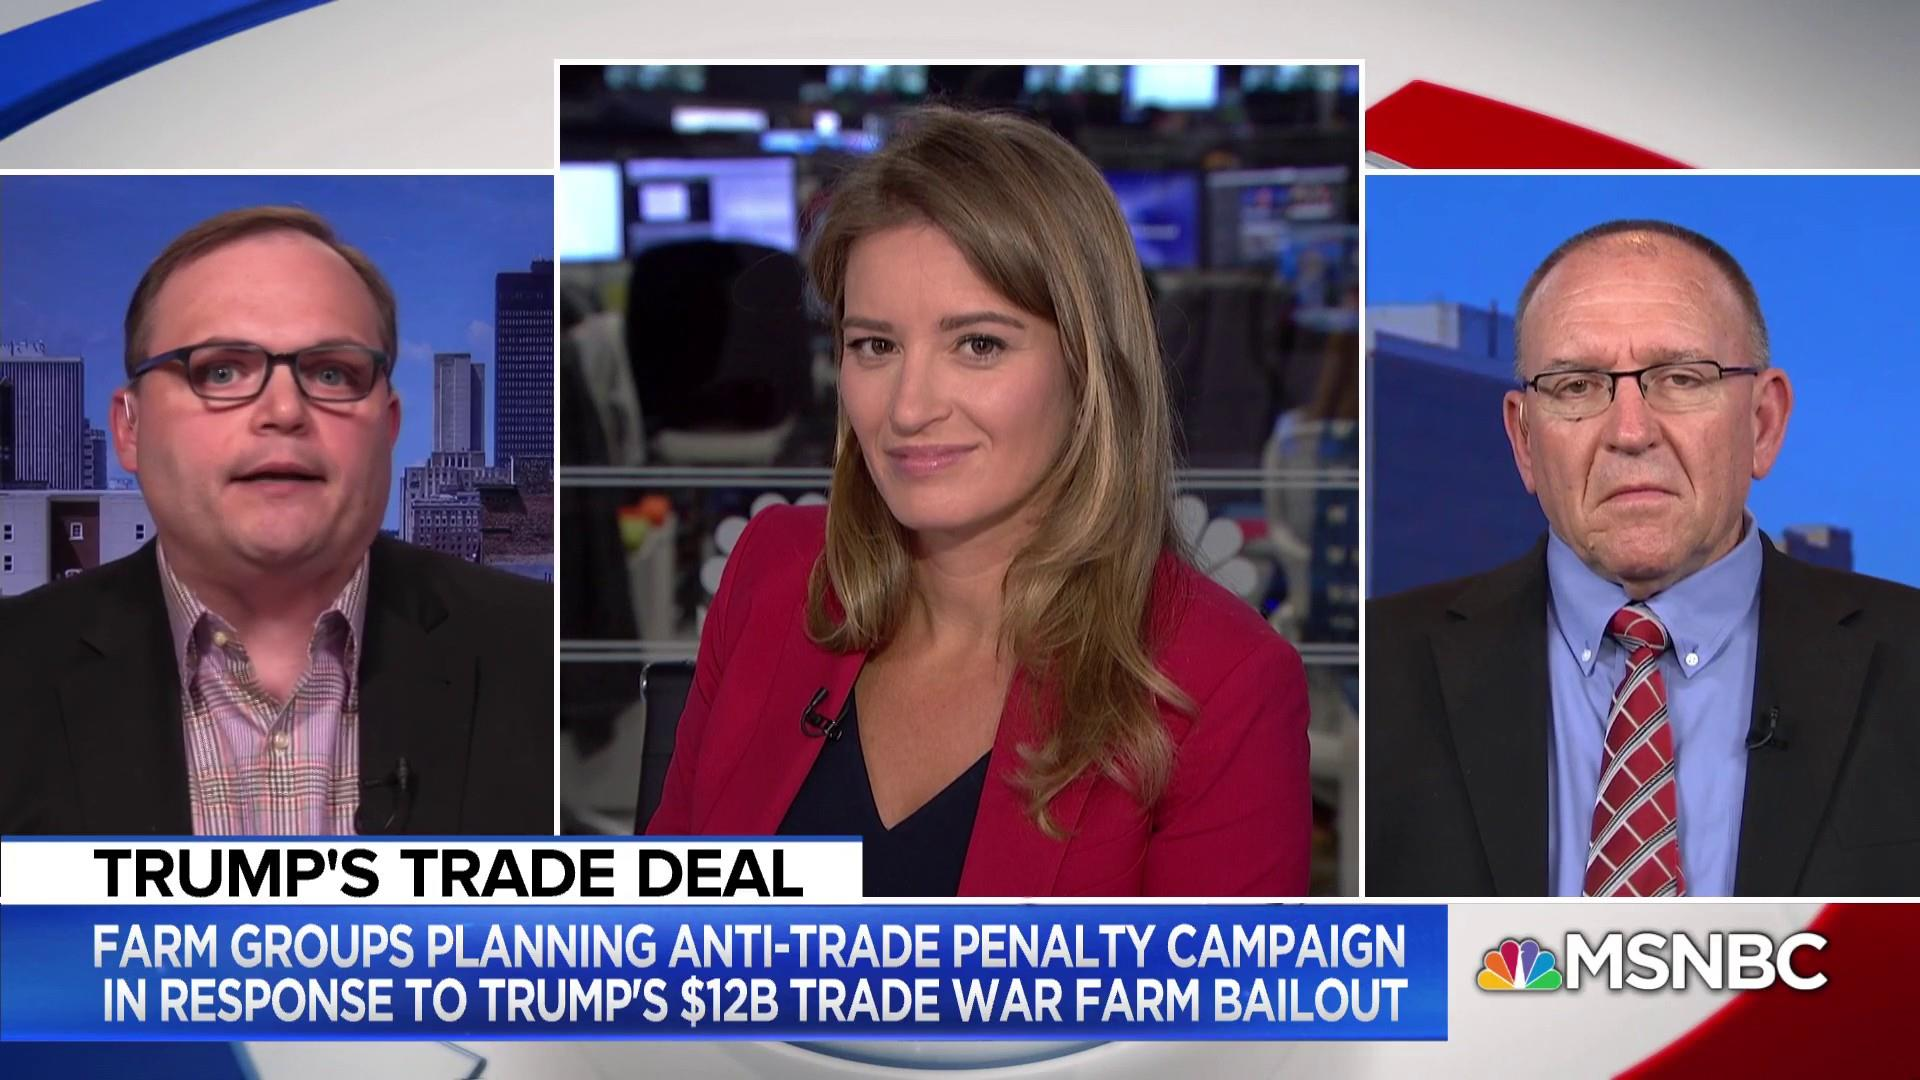 Steve Deace: President Trump has done himself a disservice with his messaging on tariff policy